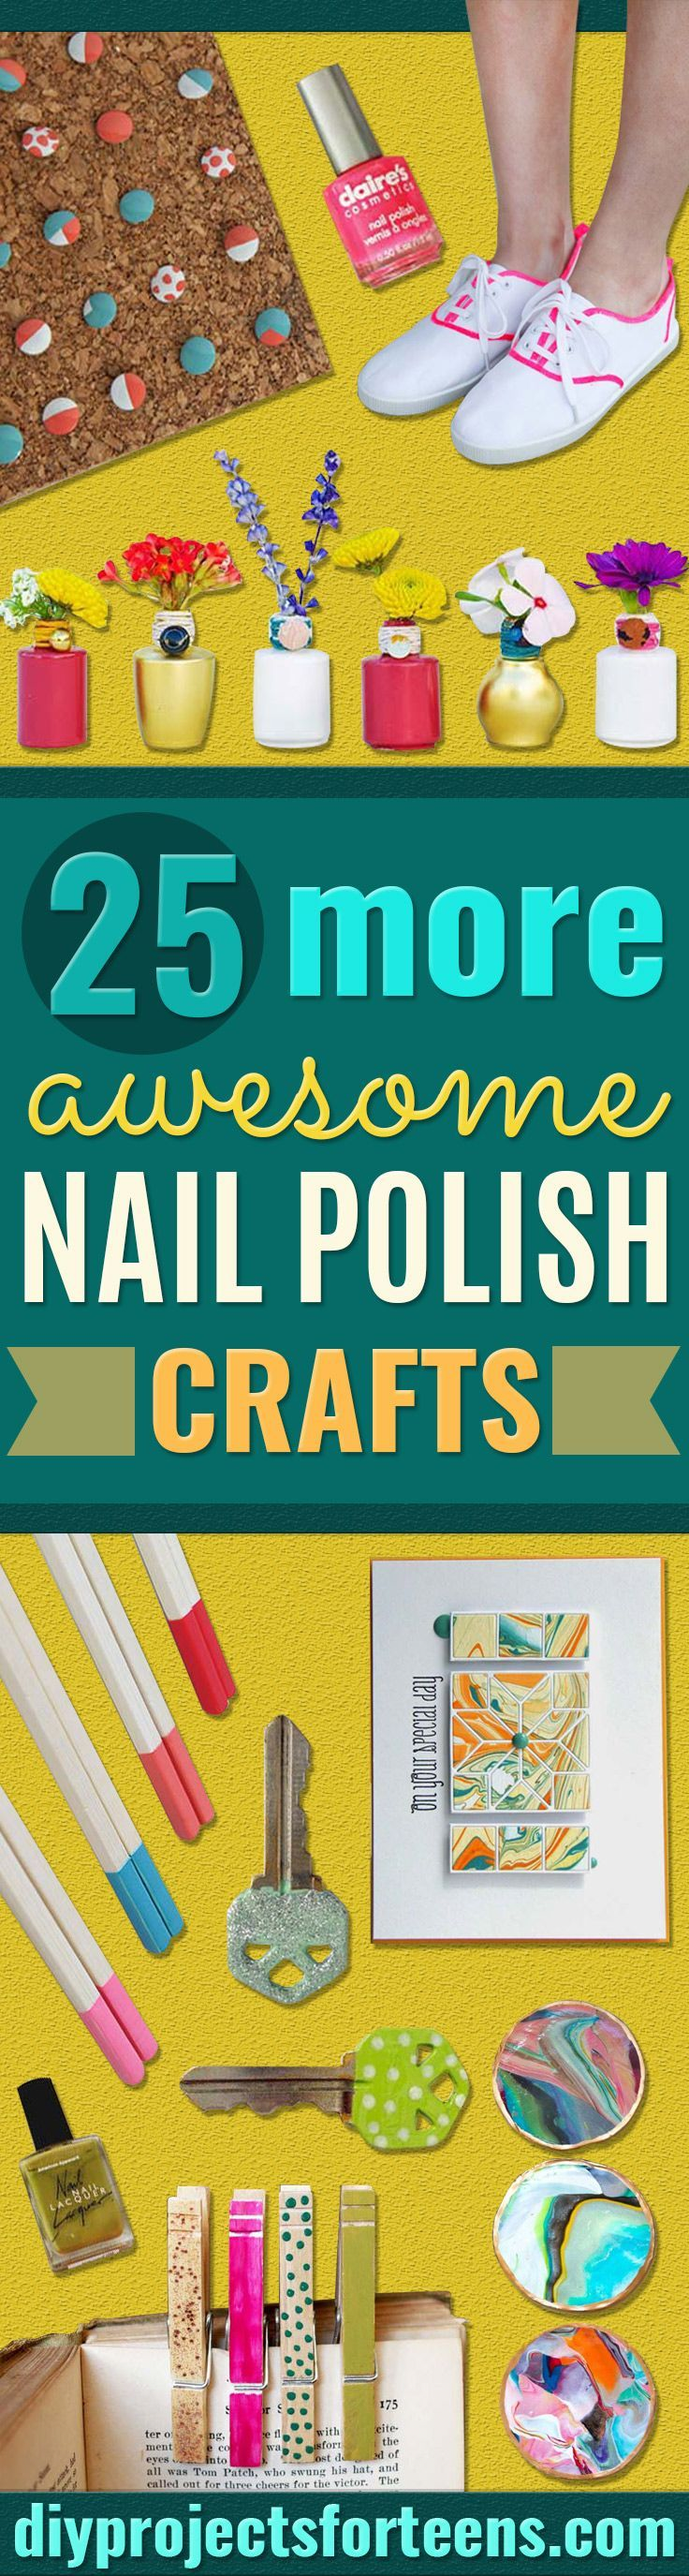 Uncategorized Step By Step Art Projects 1161 best cool crafts ideas images on pinterest diy creative 25 more awesome nail polish crafts